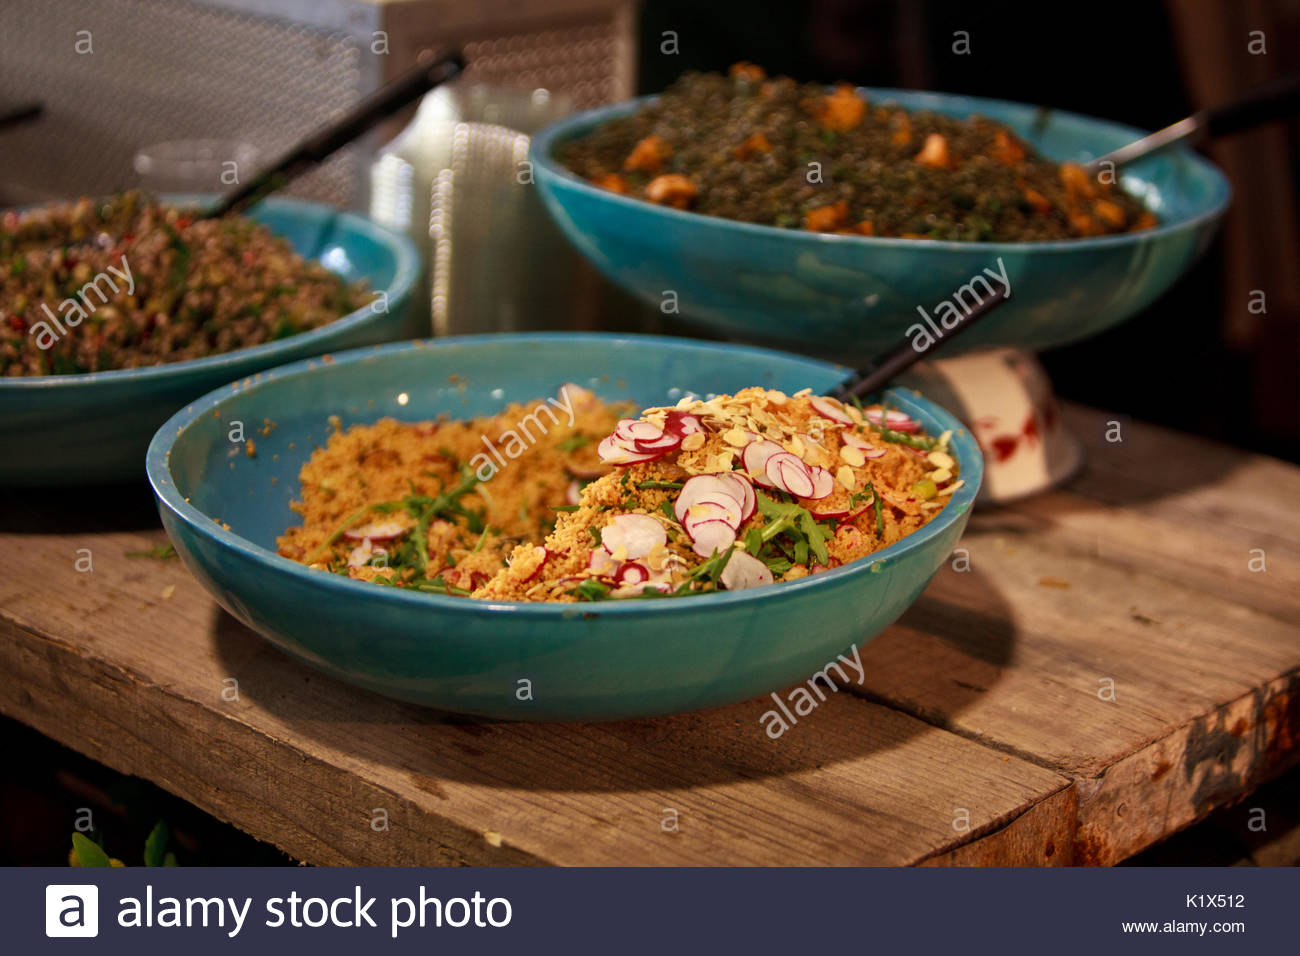 Tasty bowl of salad with blurred background - Stock Image